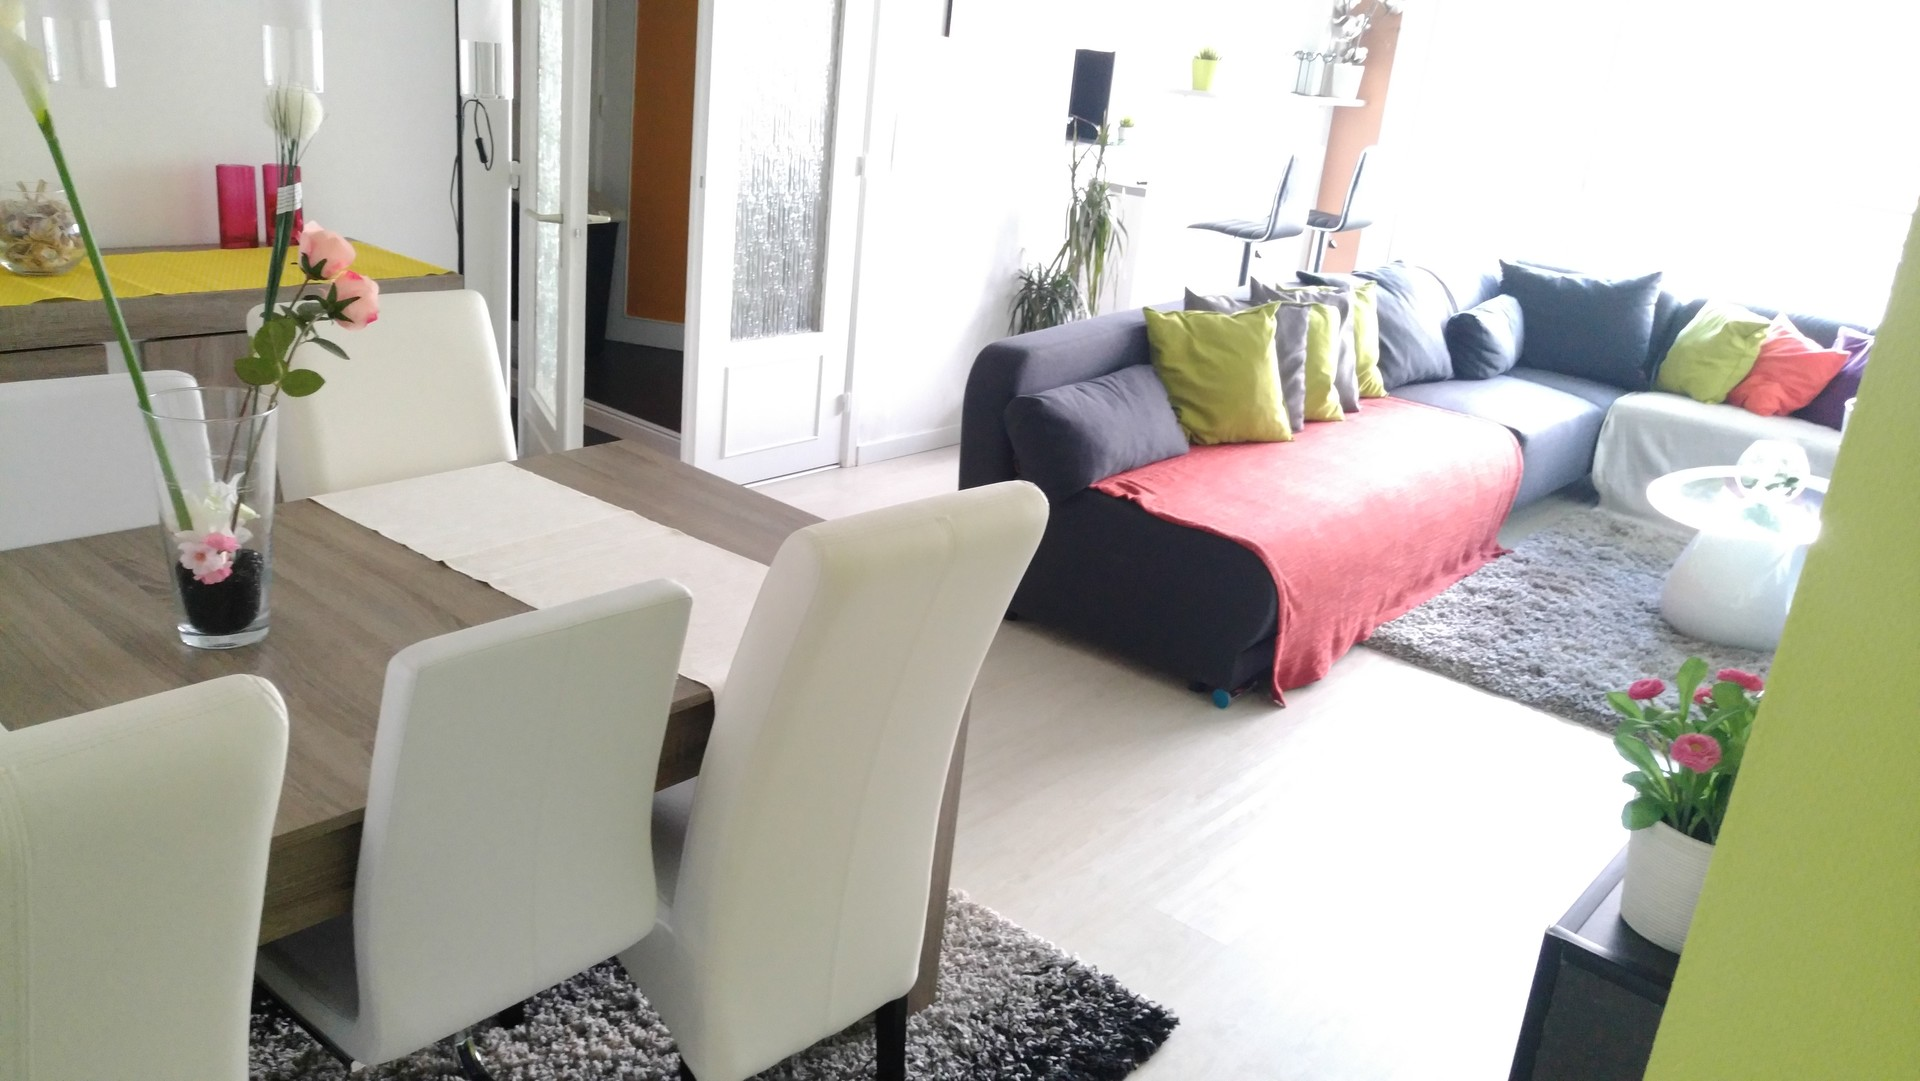 Room for rent in stylish 4 bedroom apartment with balcony in